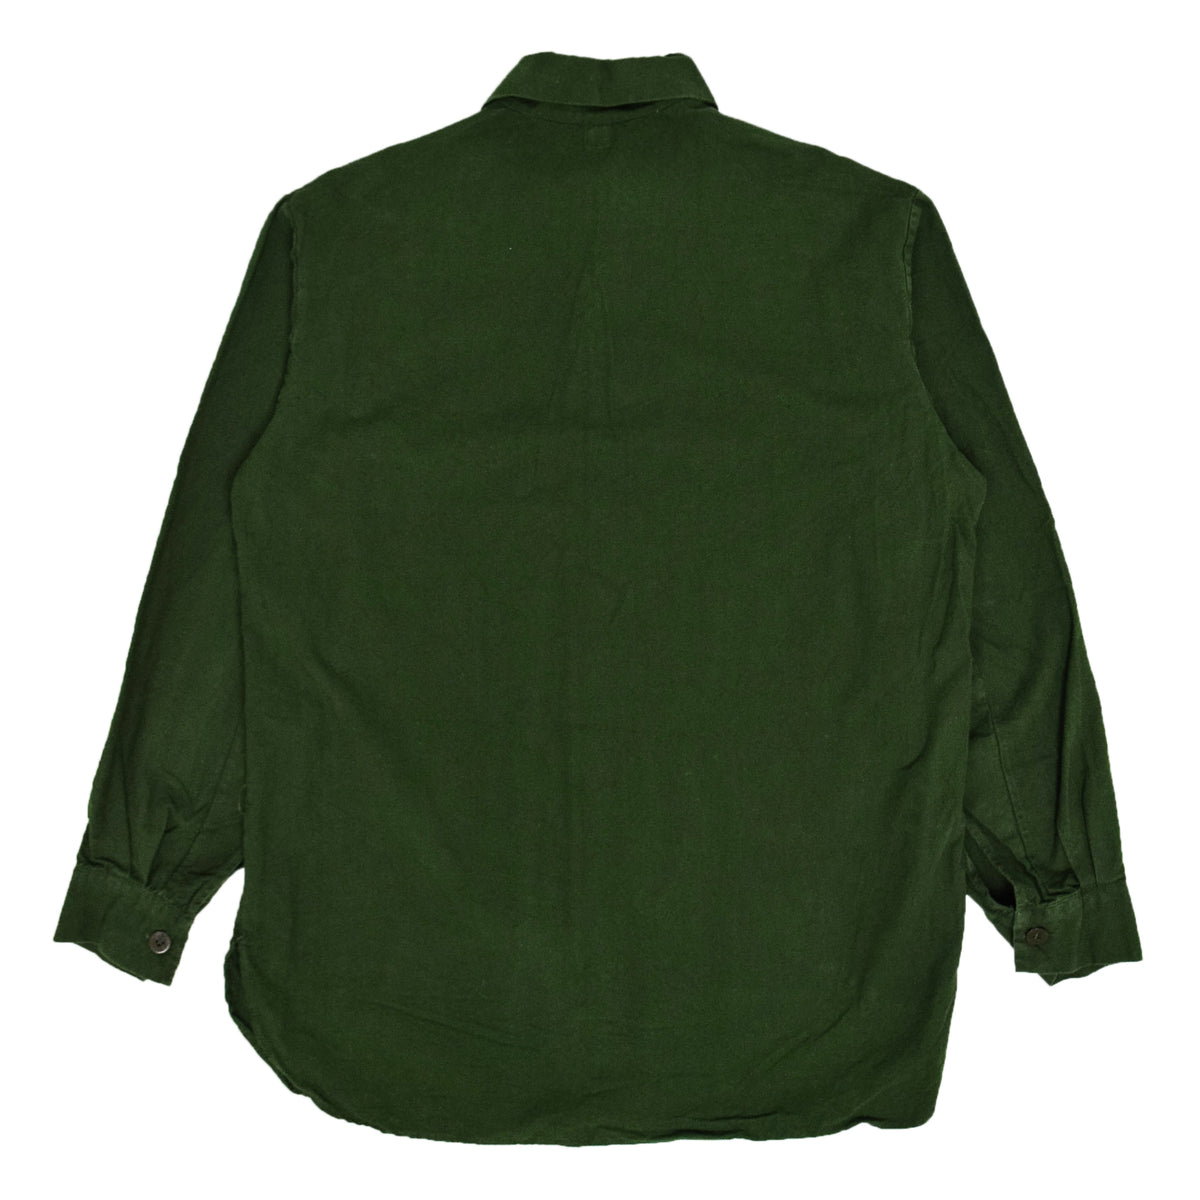 Vintage Swedish Military Overhead Smock Shirt Army Green M / L BACK